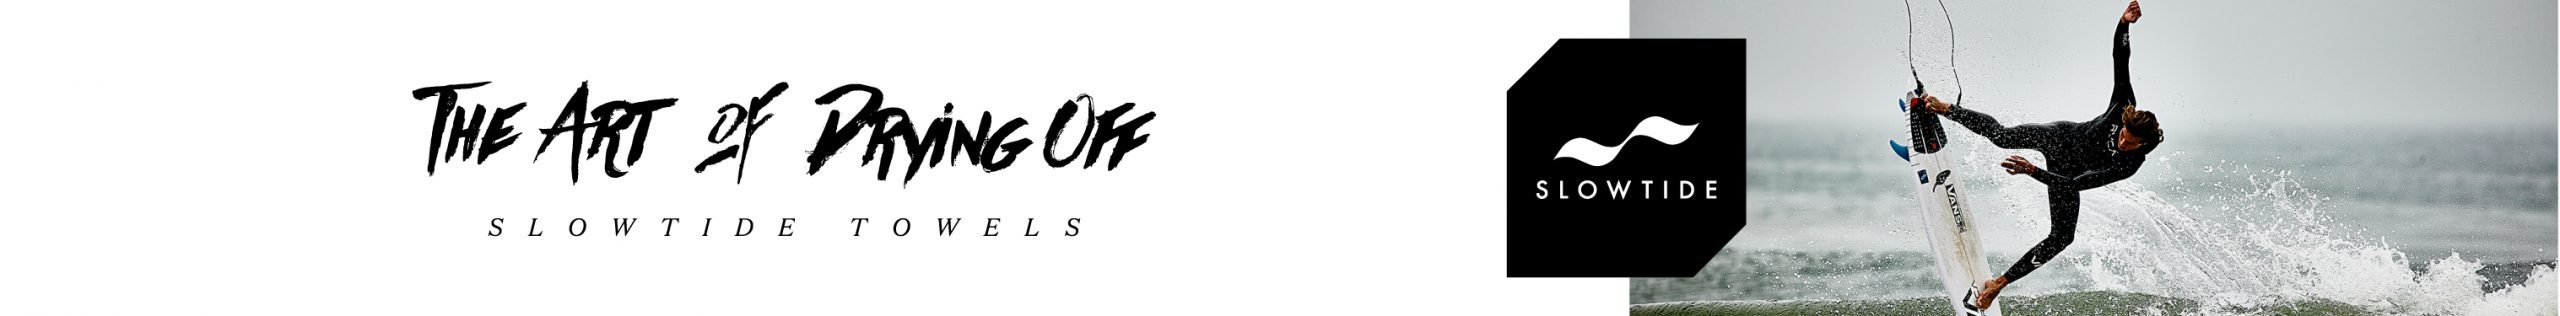 Slowtide Winter 18 Leaderboard